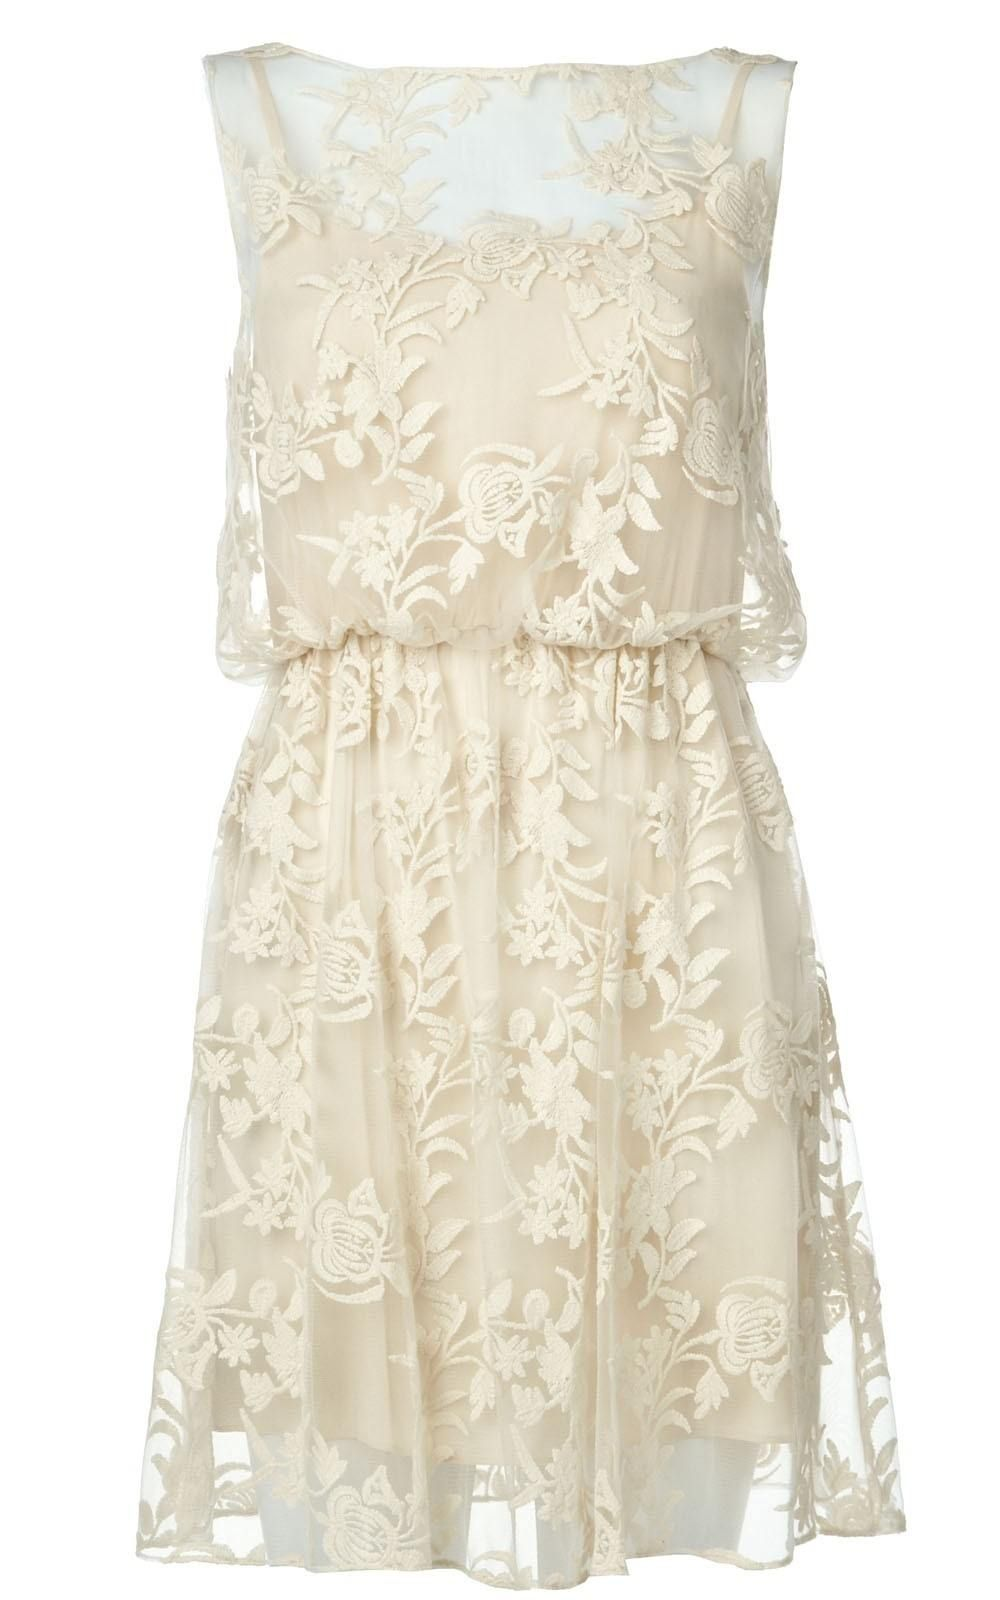 cream lace dress | Hair and style | Pinterest